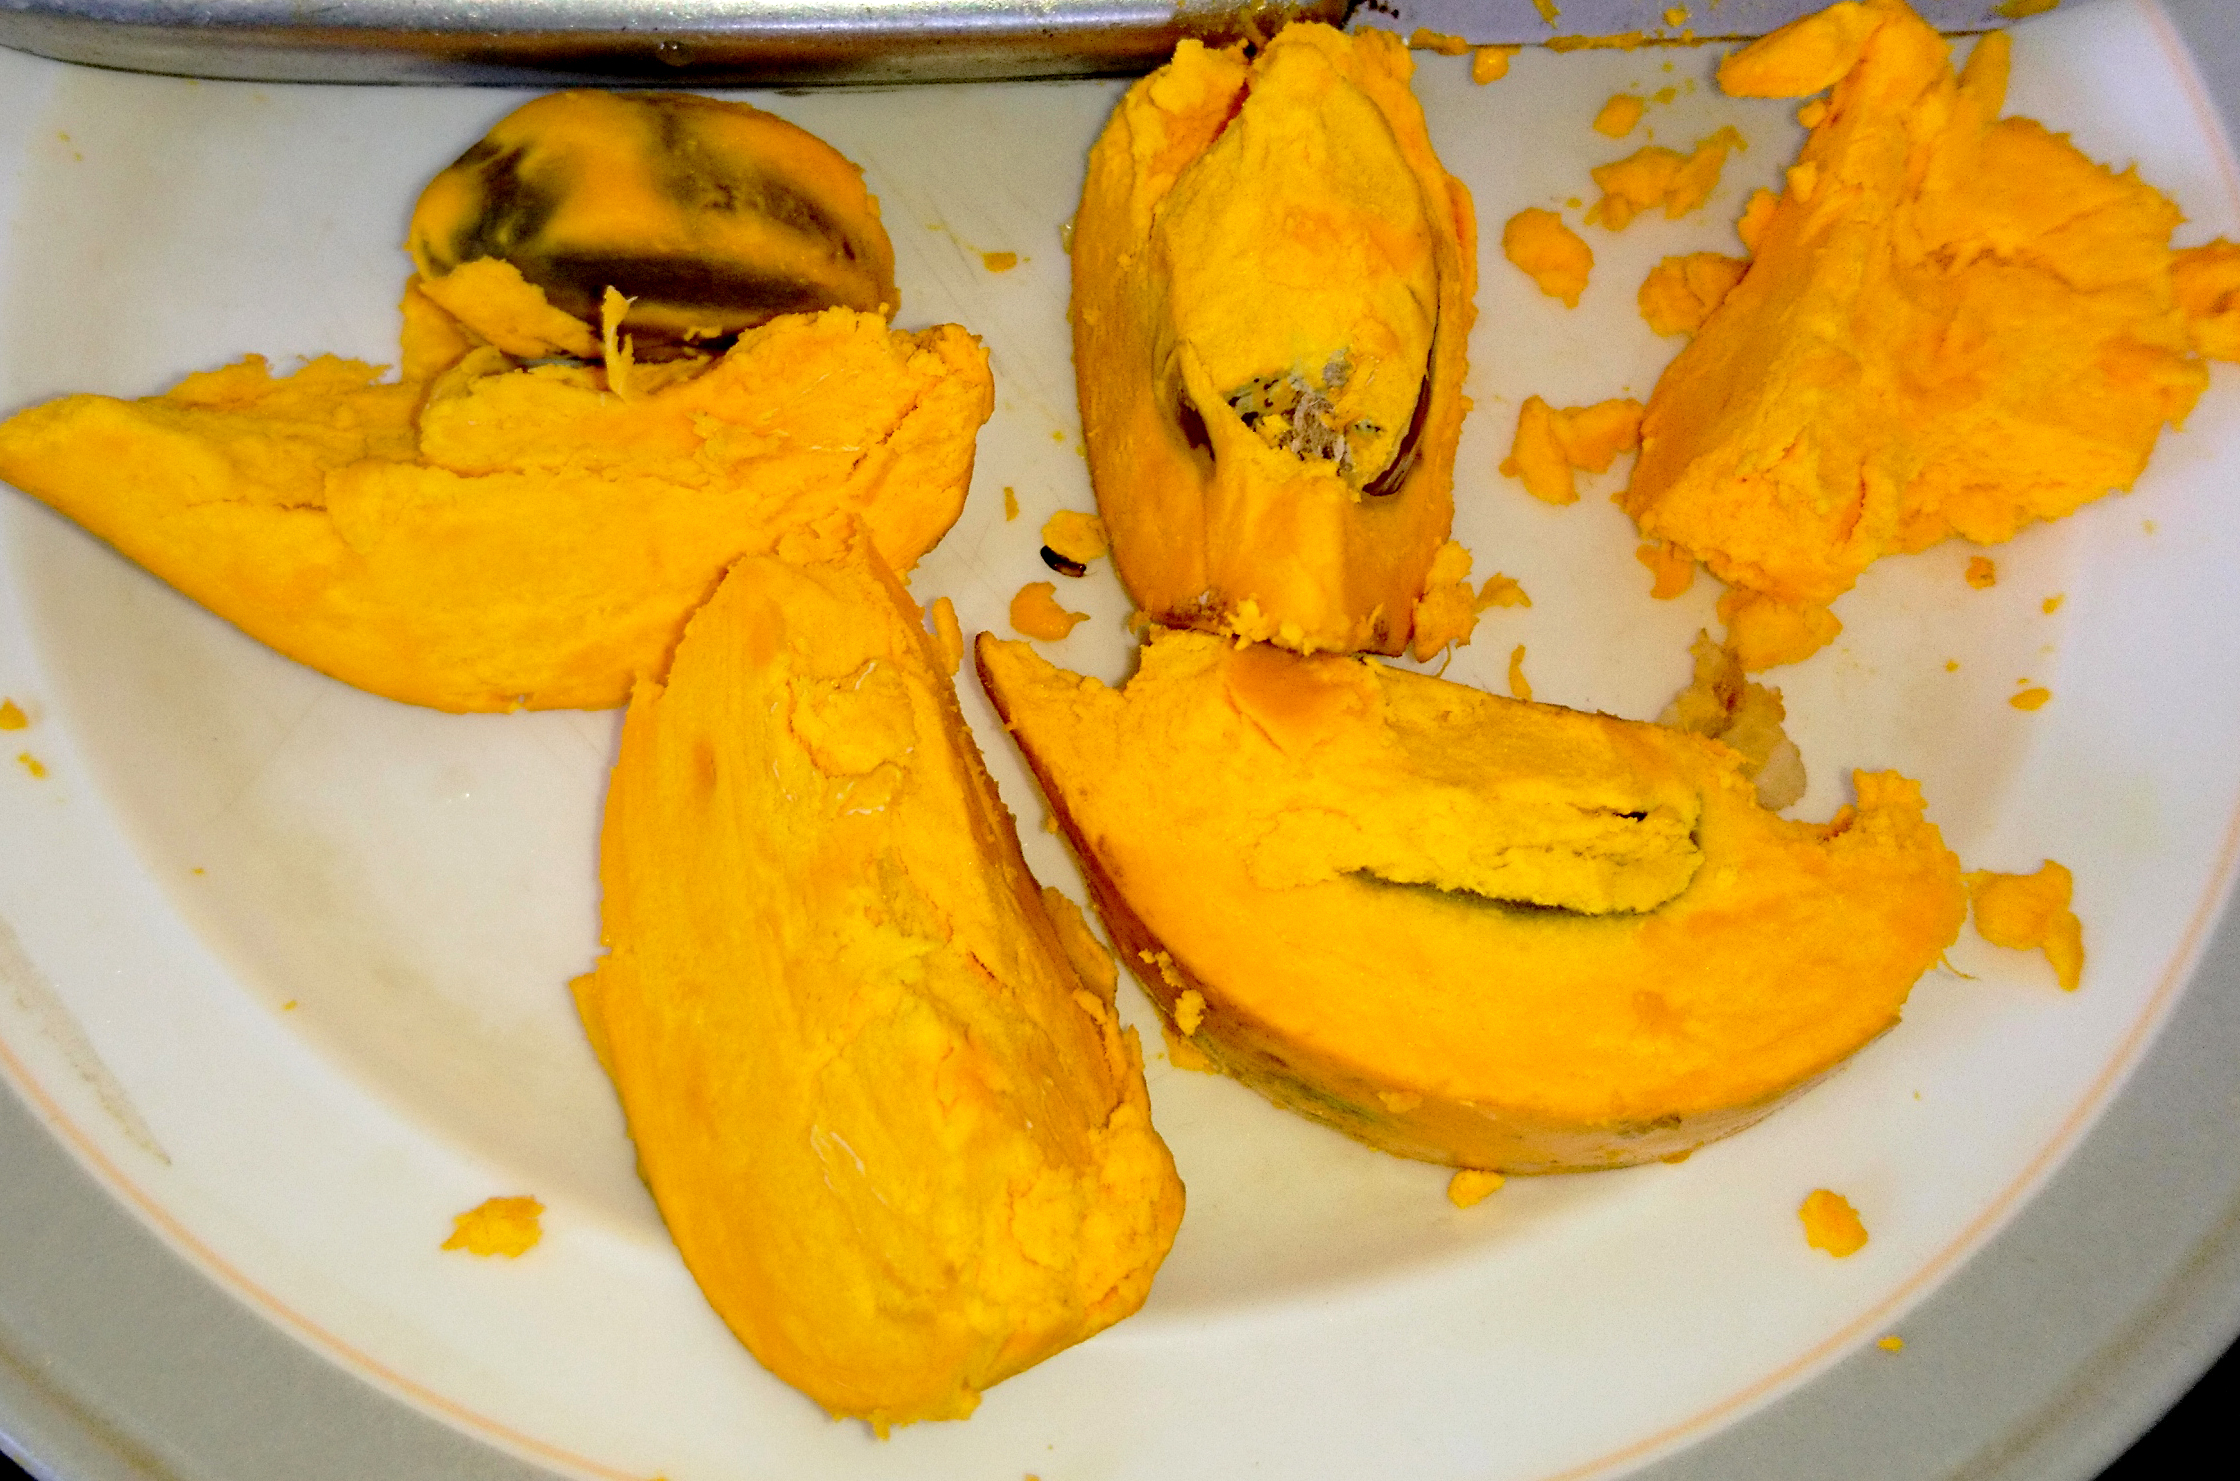 Egg_Fruit-2.jpg